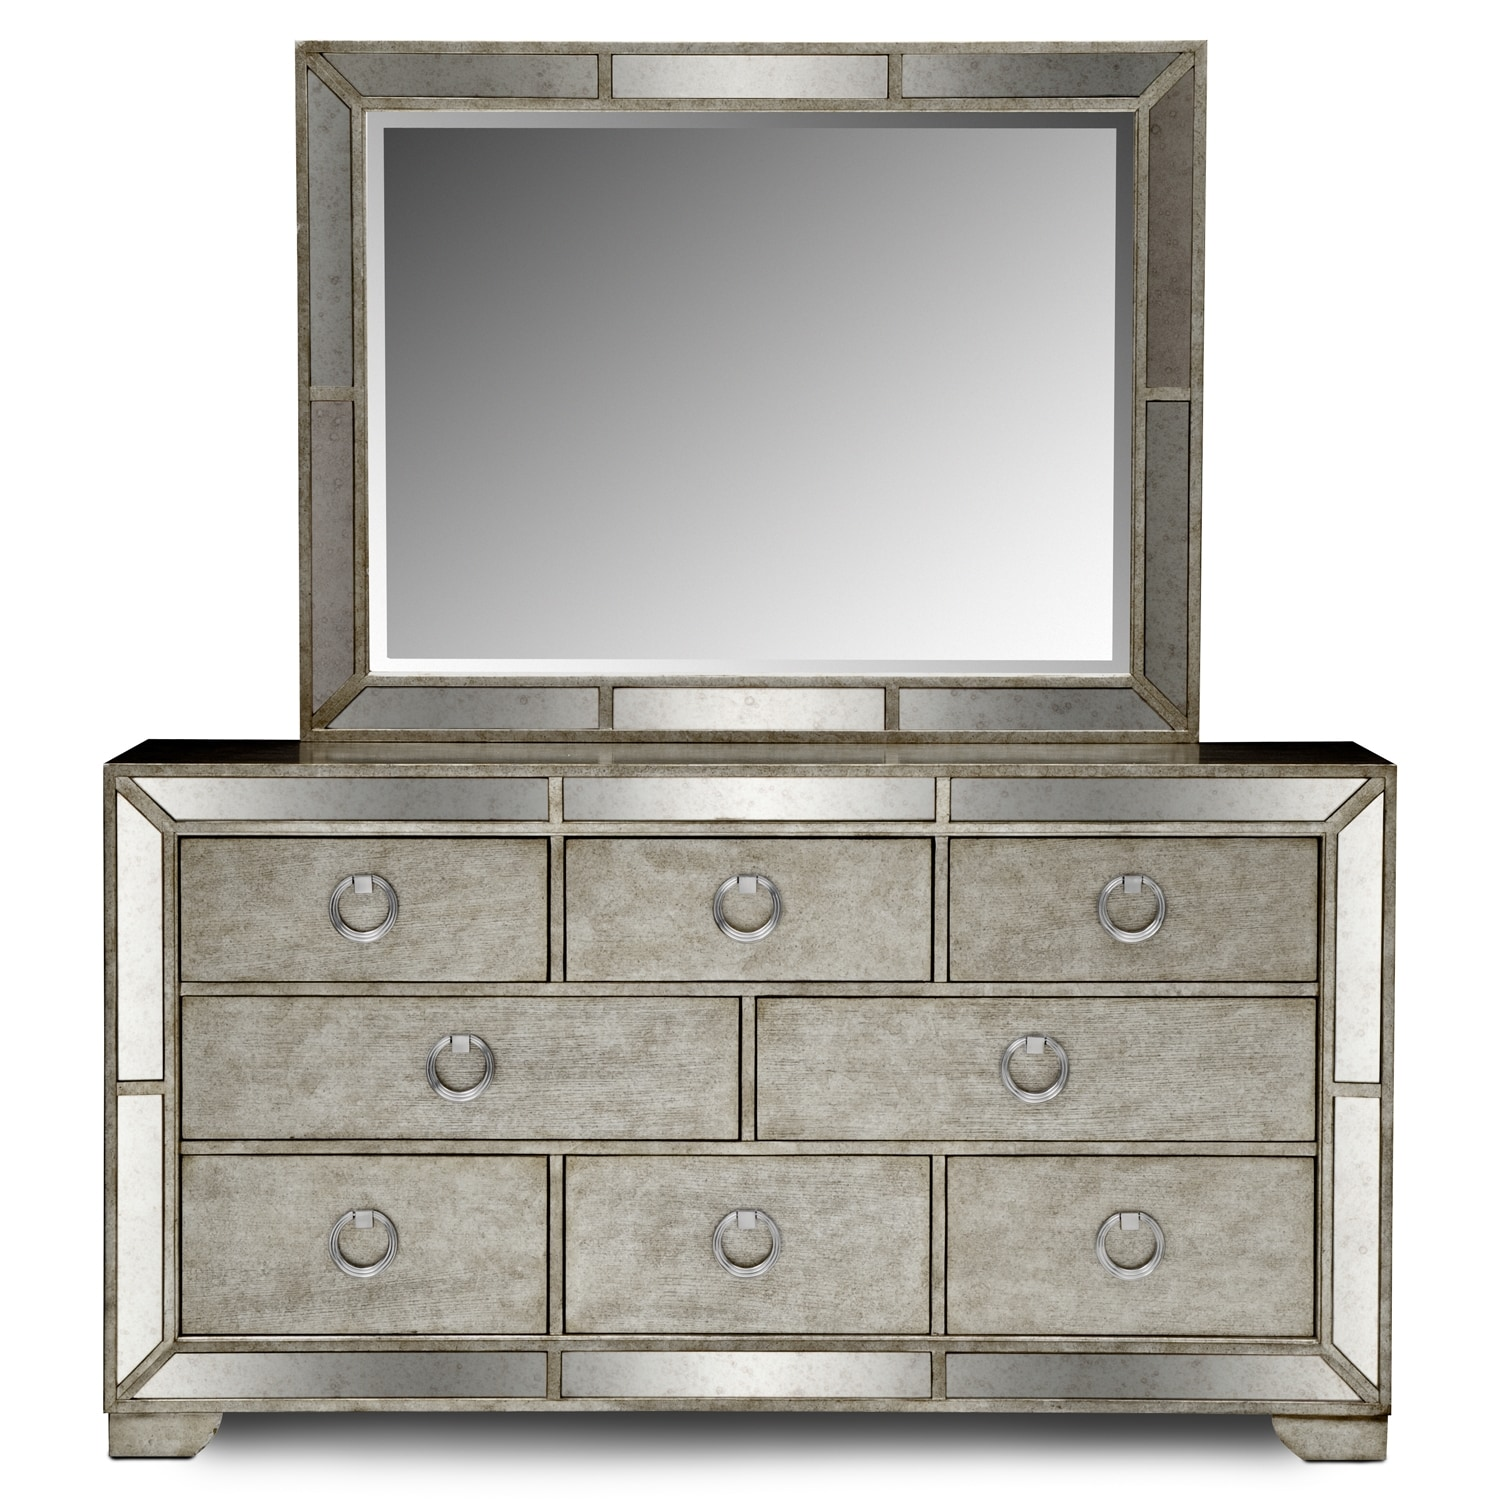 Angelina dresser and mirror metallic value city furniture for Angelina bedroom furniture set